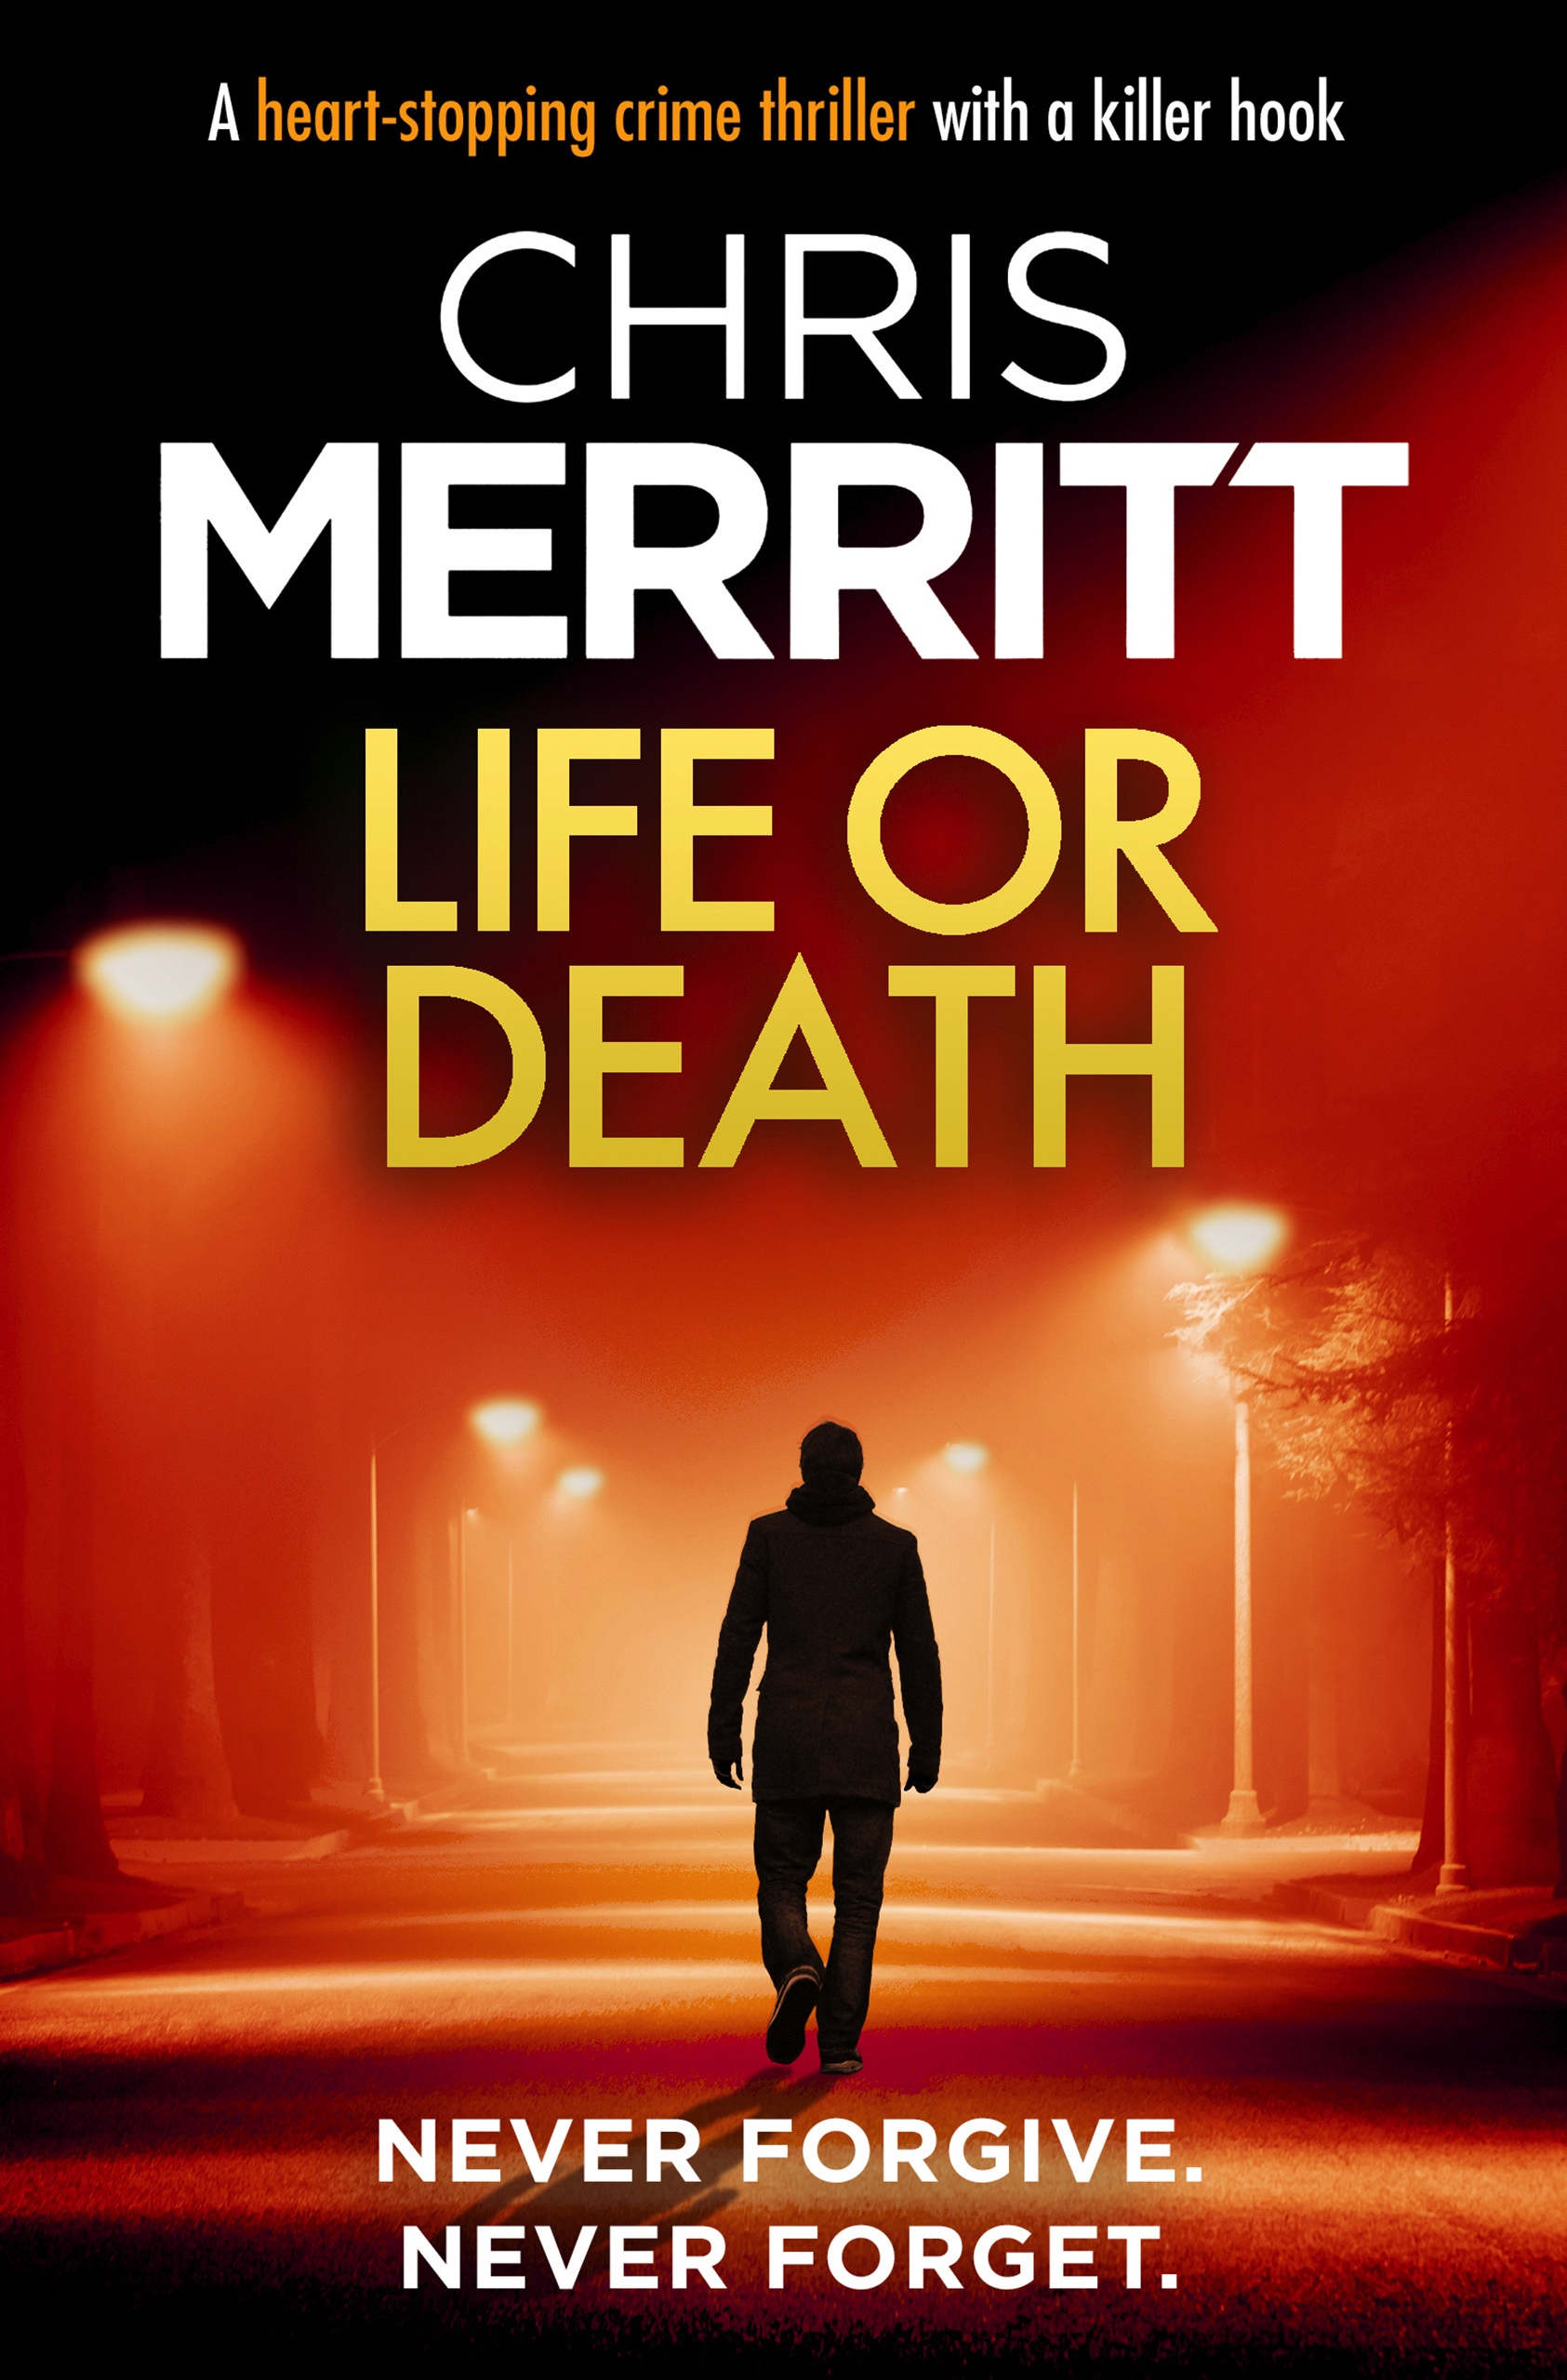 #BookReview of Life or Death by Chris Merritt @DrCJMerritt @bookouture @nholten40  #LifeOrDeath #NetGalley